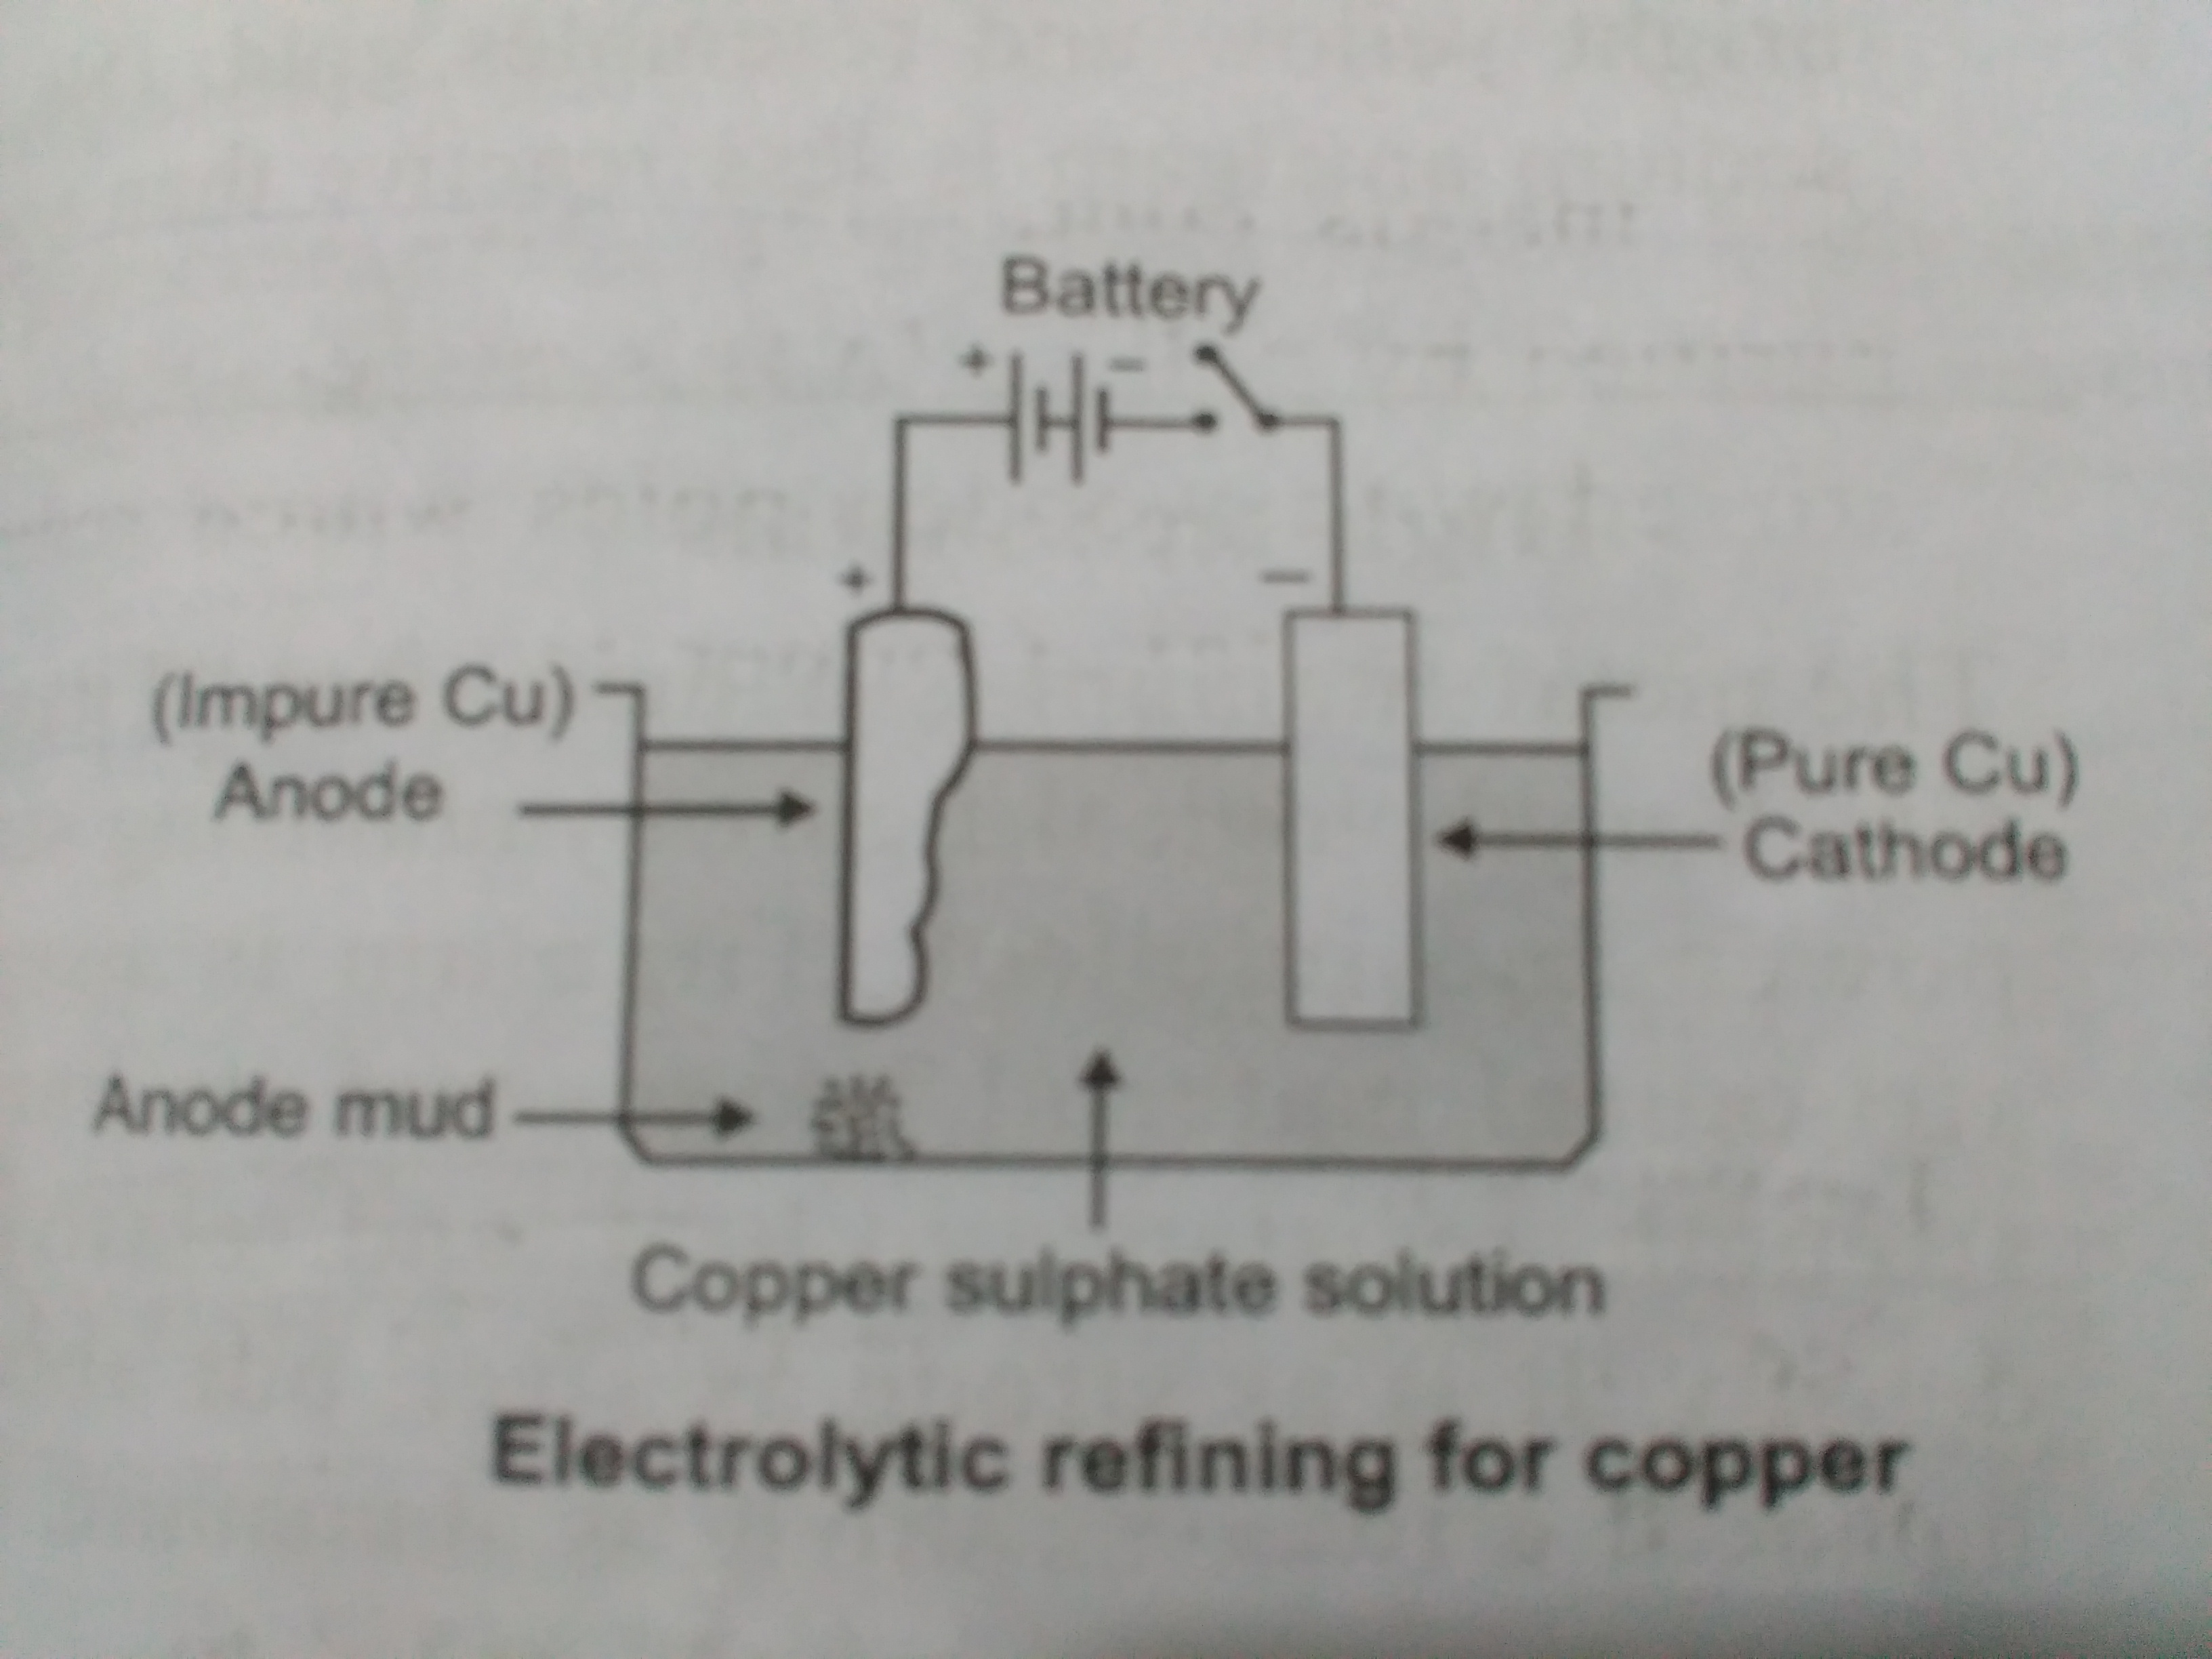 In The Electrolytic Refining Of Copper What Would You Take As The